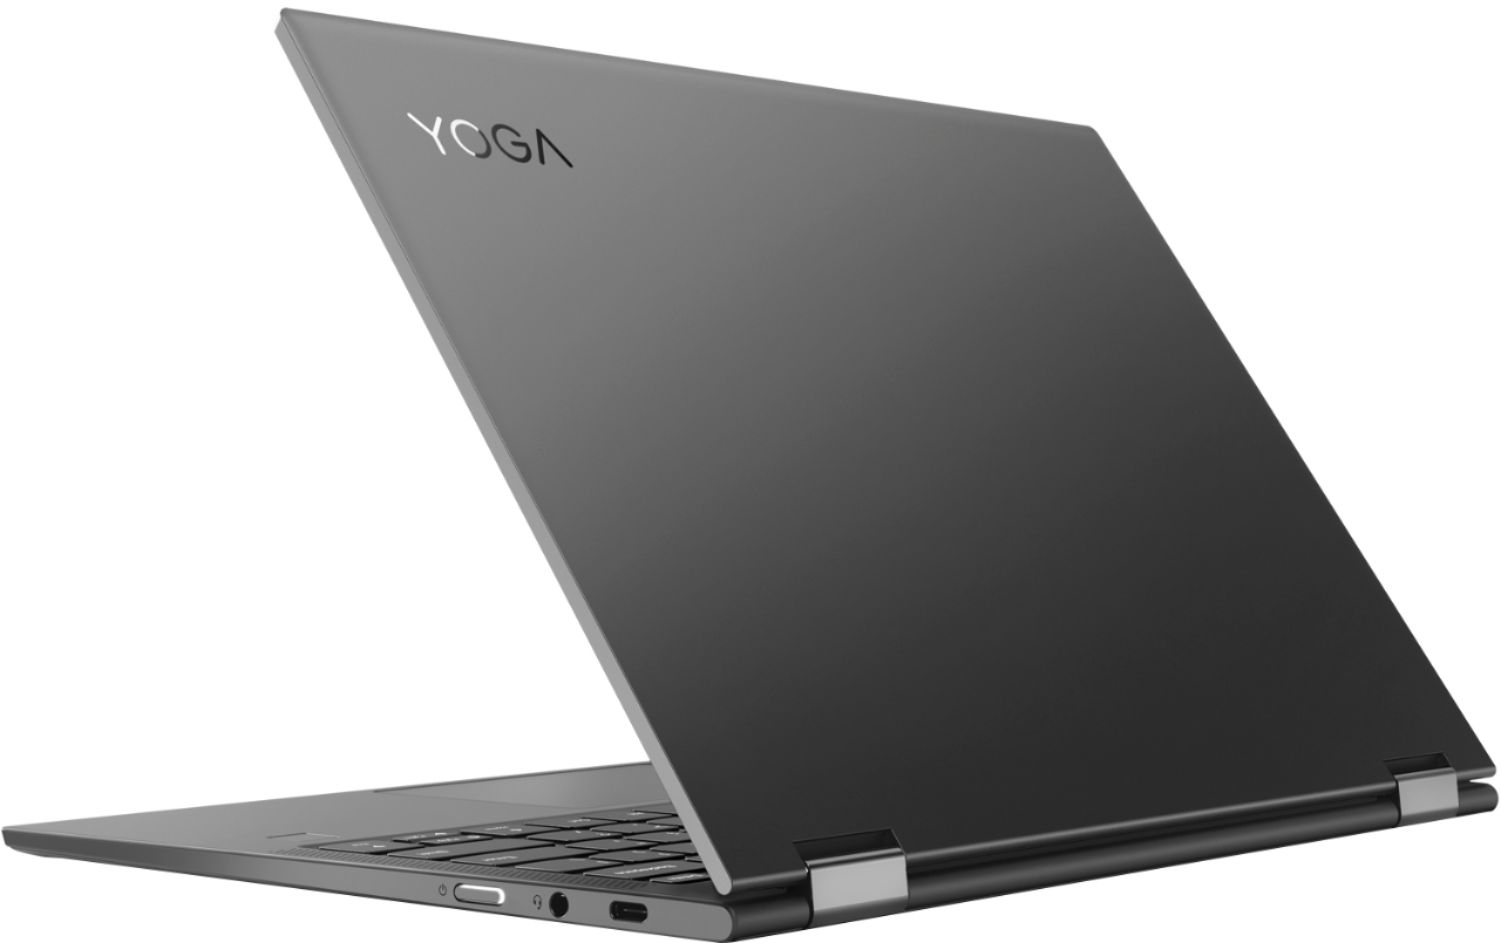 """Alt View Zoom 1. Lenovo - Yoga C630 WOS 2-in-1 13.3"""" Touch-Screen Laptop - Snapdragon 850 - 8GB Memory - 128GB Solid State Drive (Verizon) - Iron Gray."""